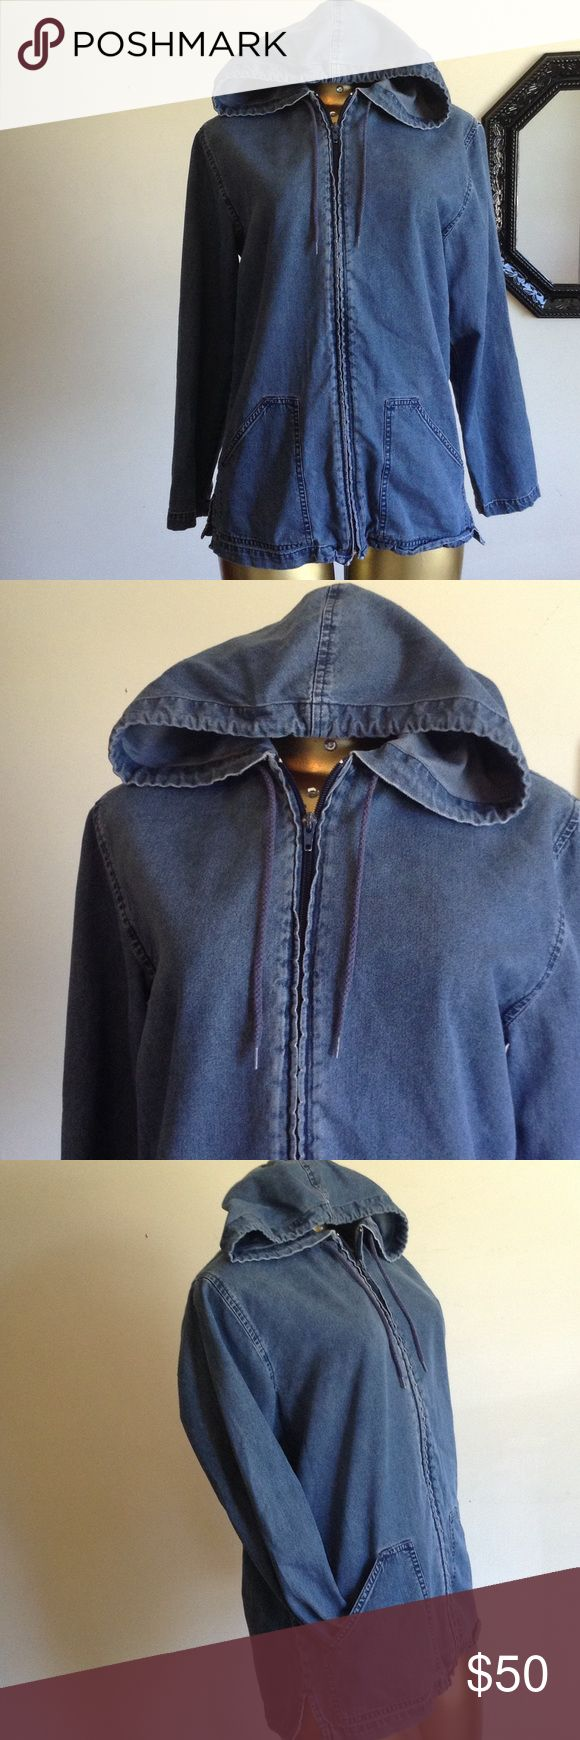 MUST HAVE DENIM ZIP UP HOODIE WITH POCKETS MUST HAVE DEMIN ZIP UP HOODIE WITH FRONT POCKETS Jackets & Coats